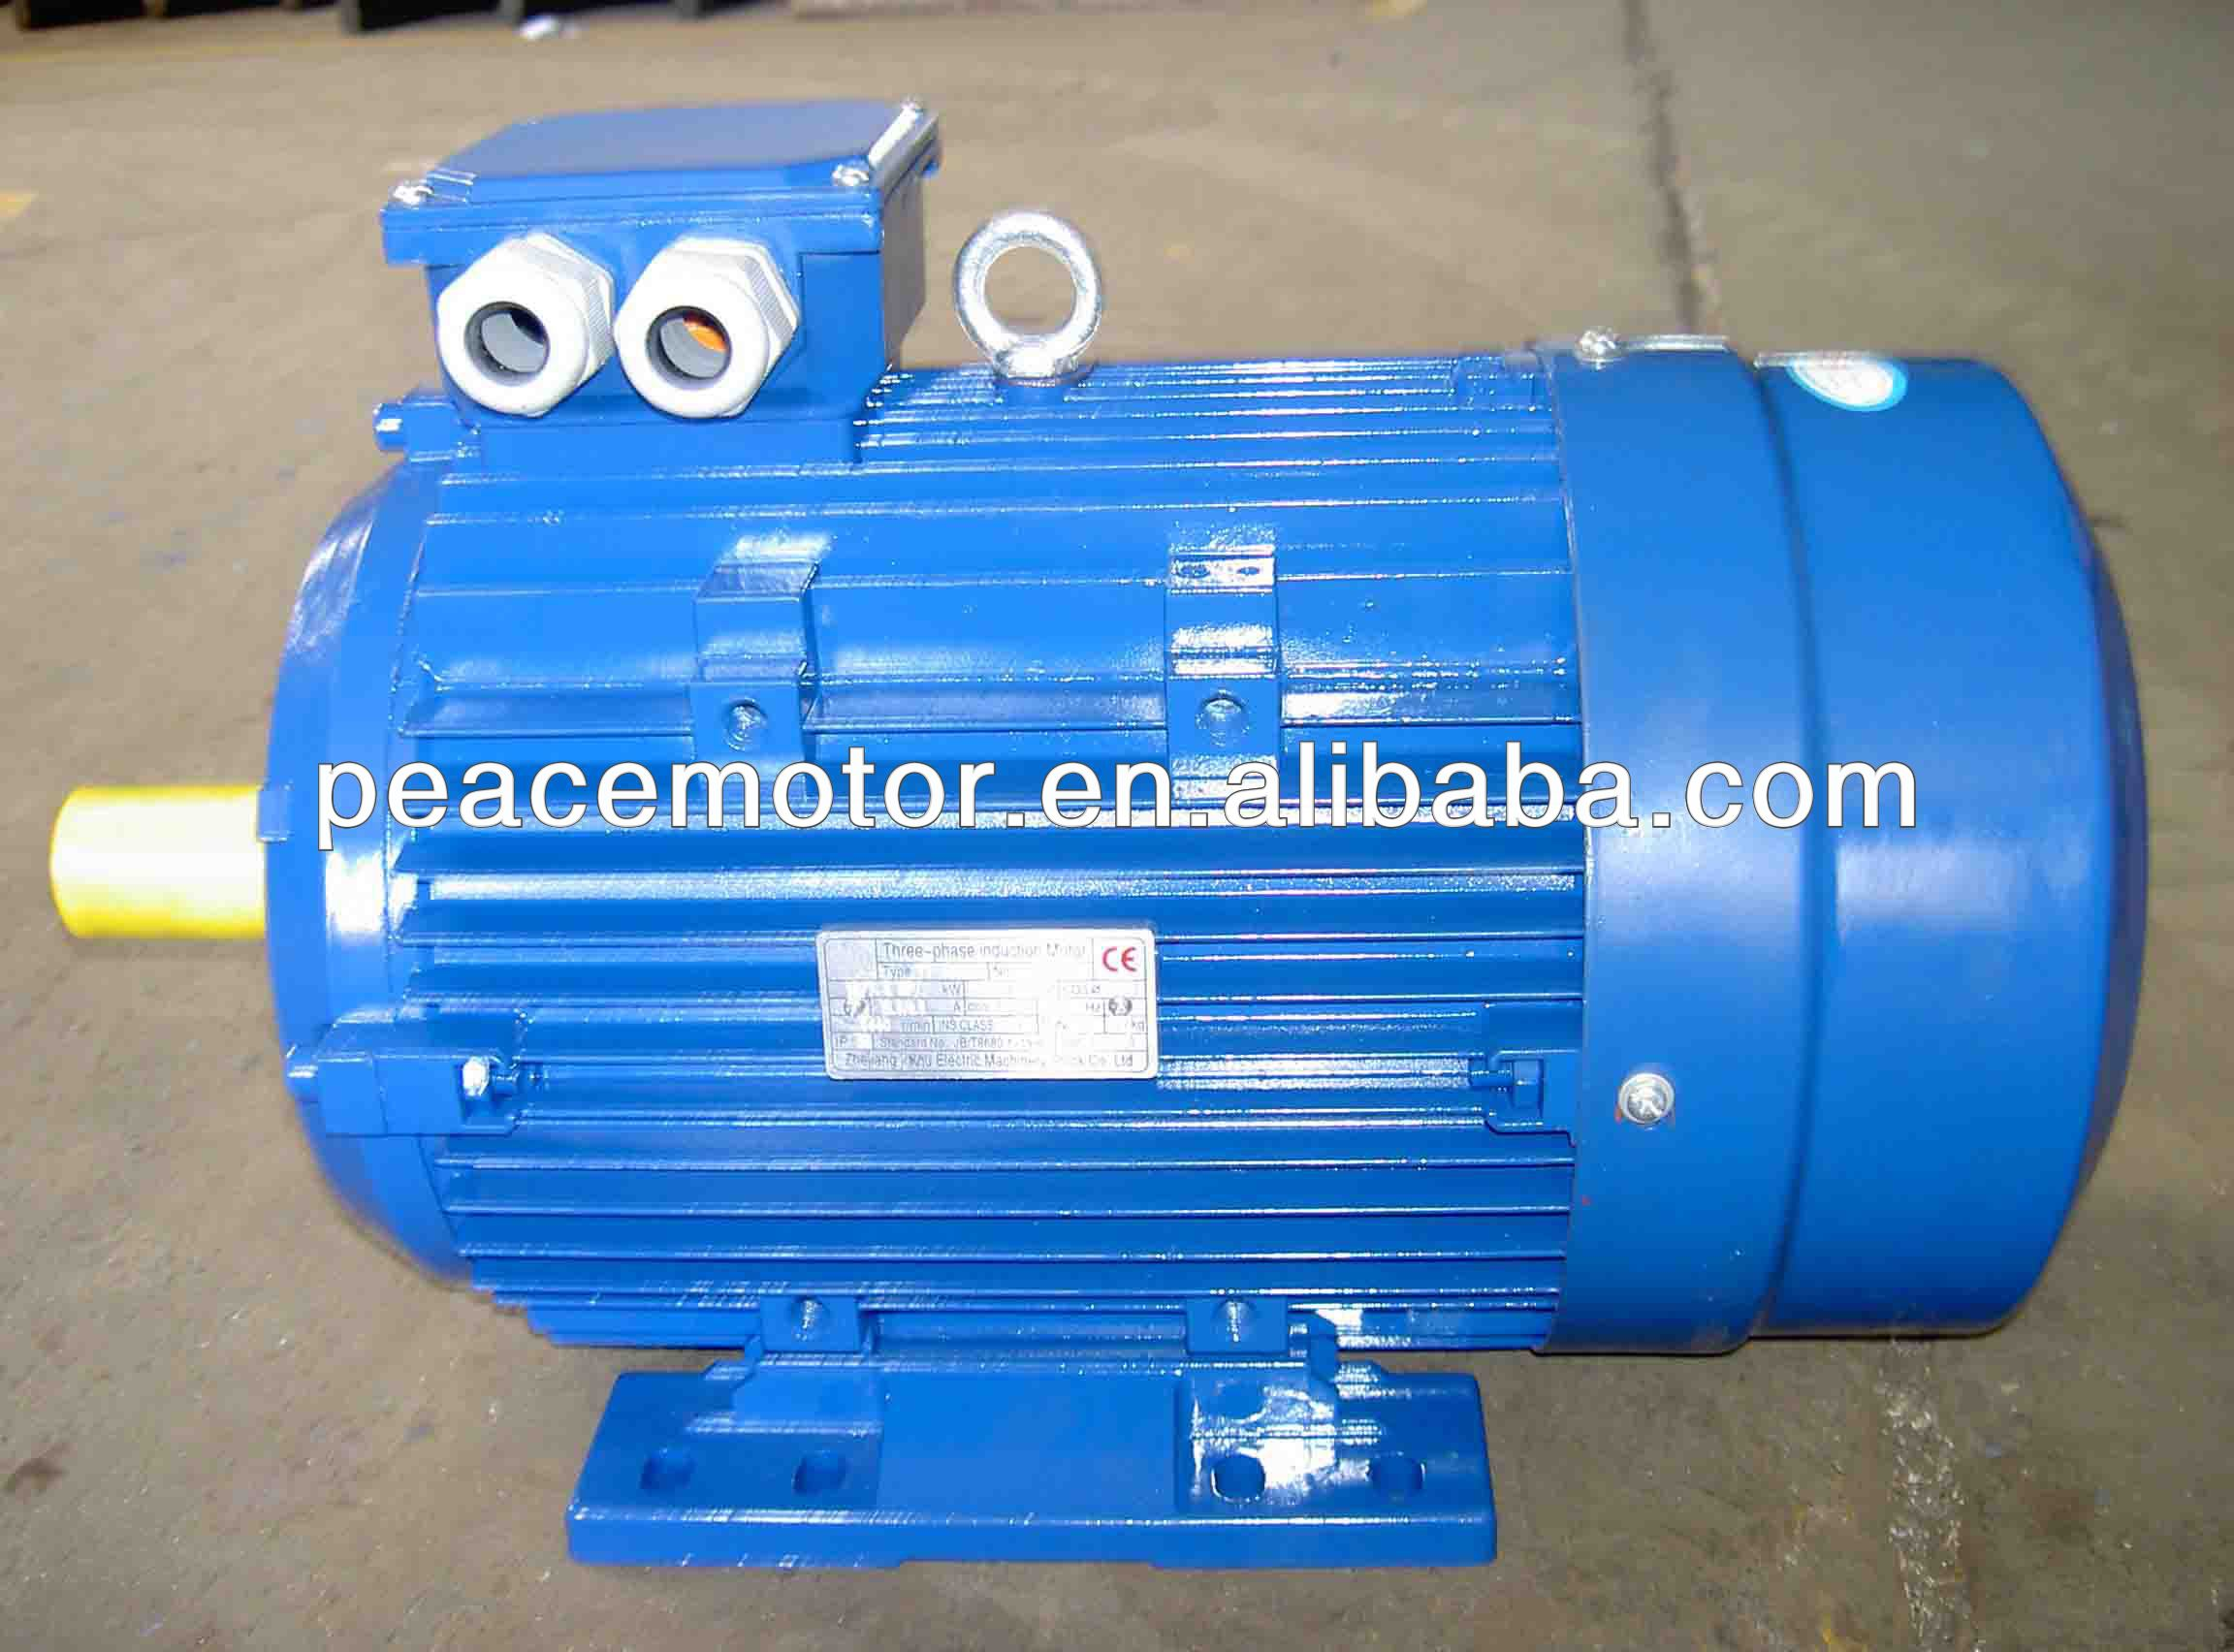 Cbb60 16uf 250v Ac Motor 28 Images For Sale Capacitor